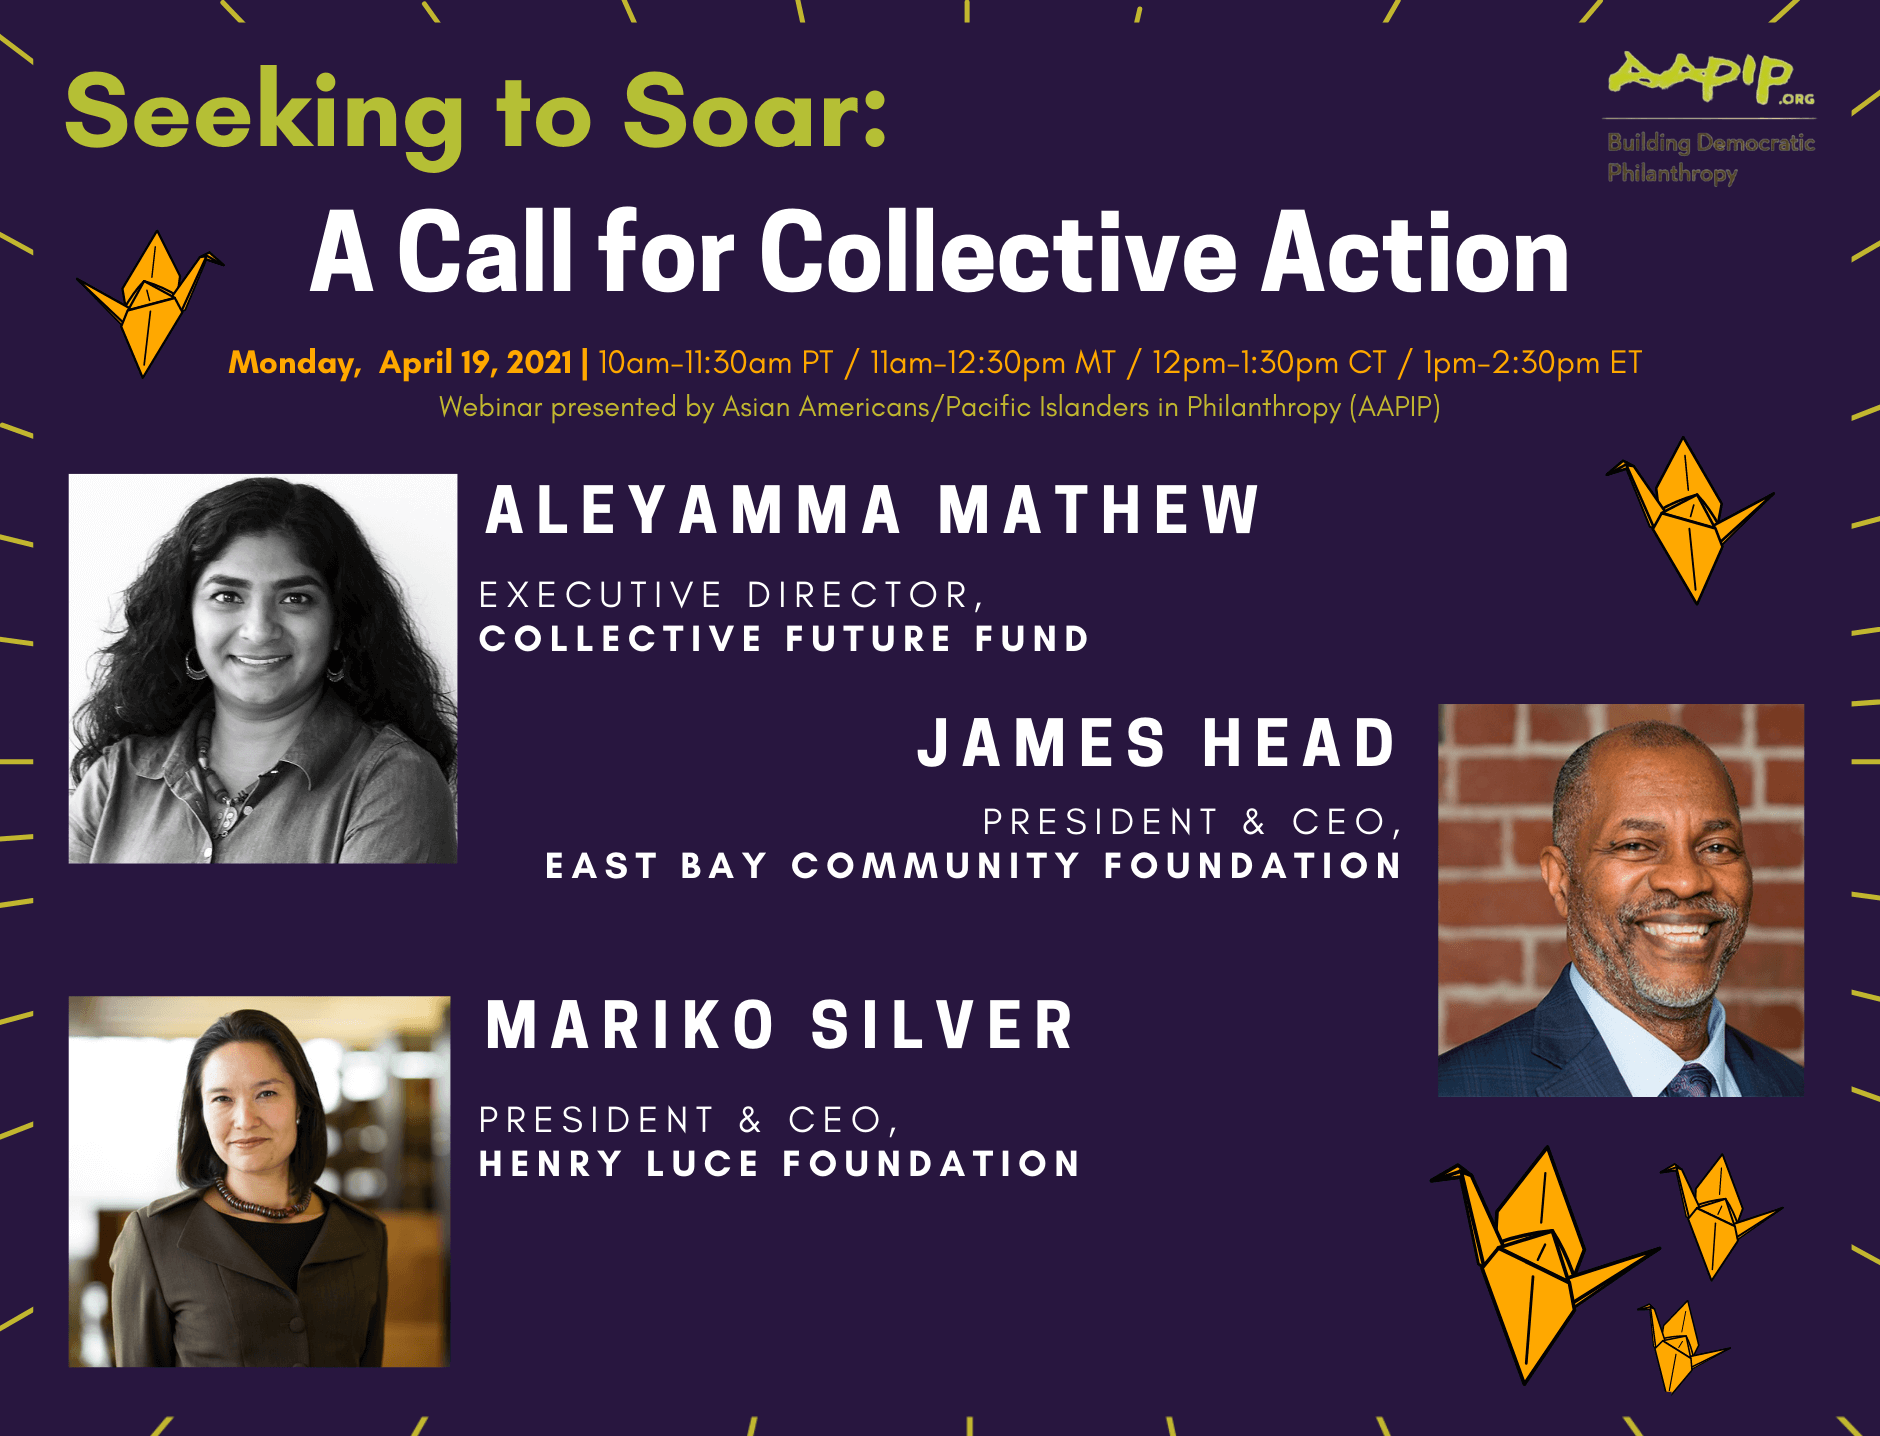 Seeking to Soar: A Call for Collective Action. Monday, April 19, 2021 (10-11:30am PT / 11-12:30pm MT / 12-1:30pm CT / 1-2:30pm ET). Speakers: Aleyamma Mathew, James Head, Mariko Silver.